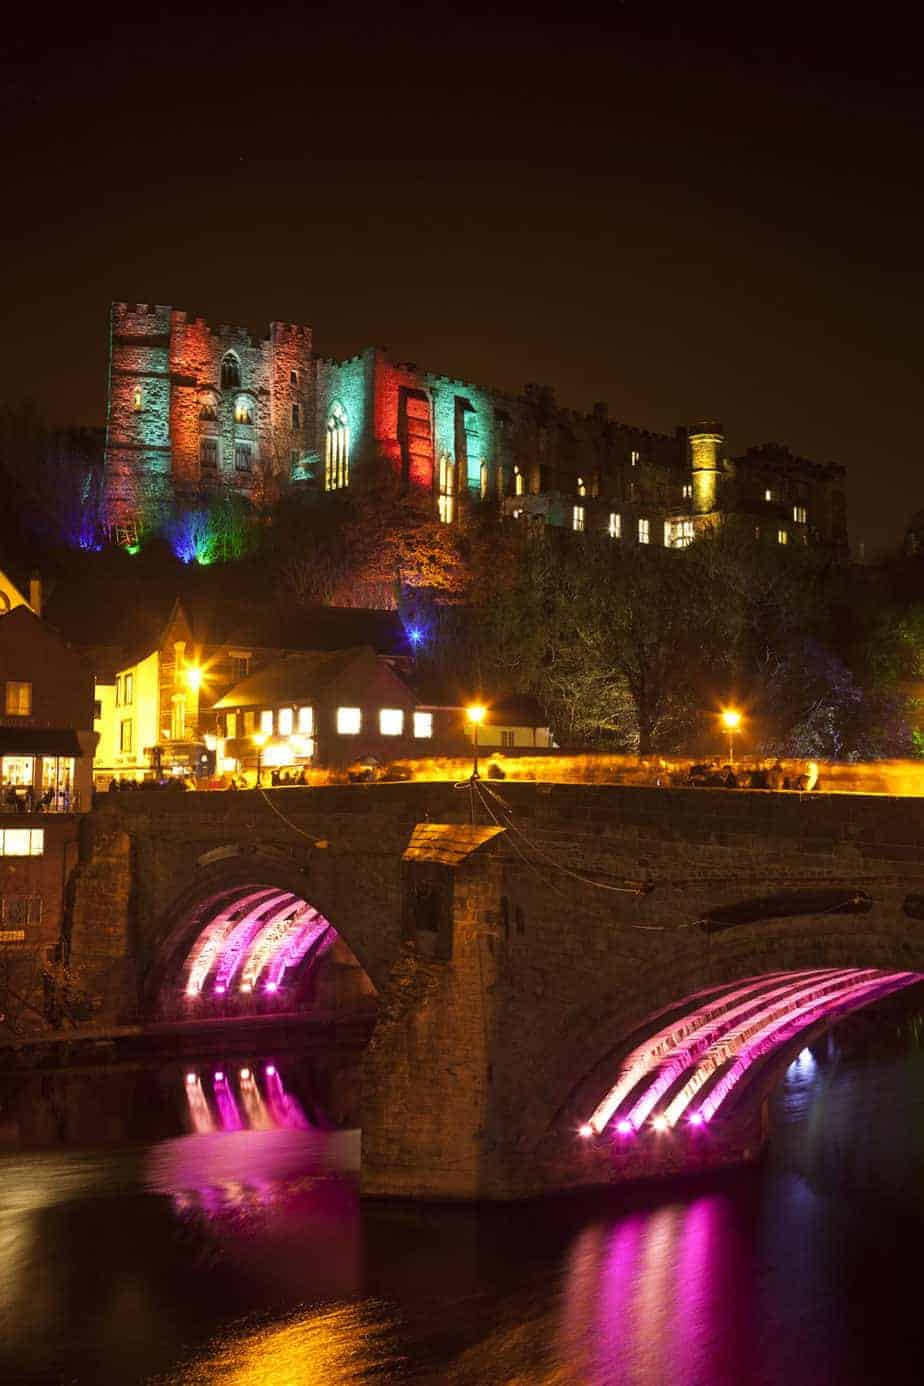 HI-LIGHTS by Martin Warden, LUMIERE 2011, produced by Artichoke in Durham. Photo Matthew Andrews.